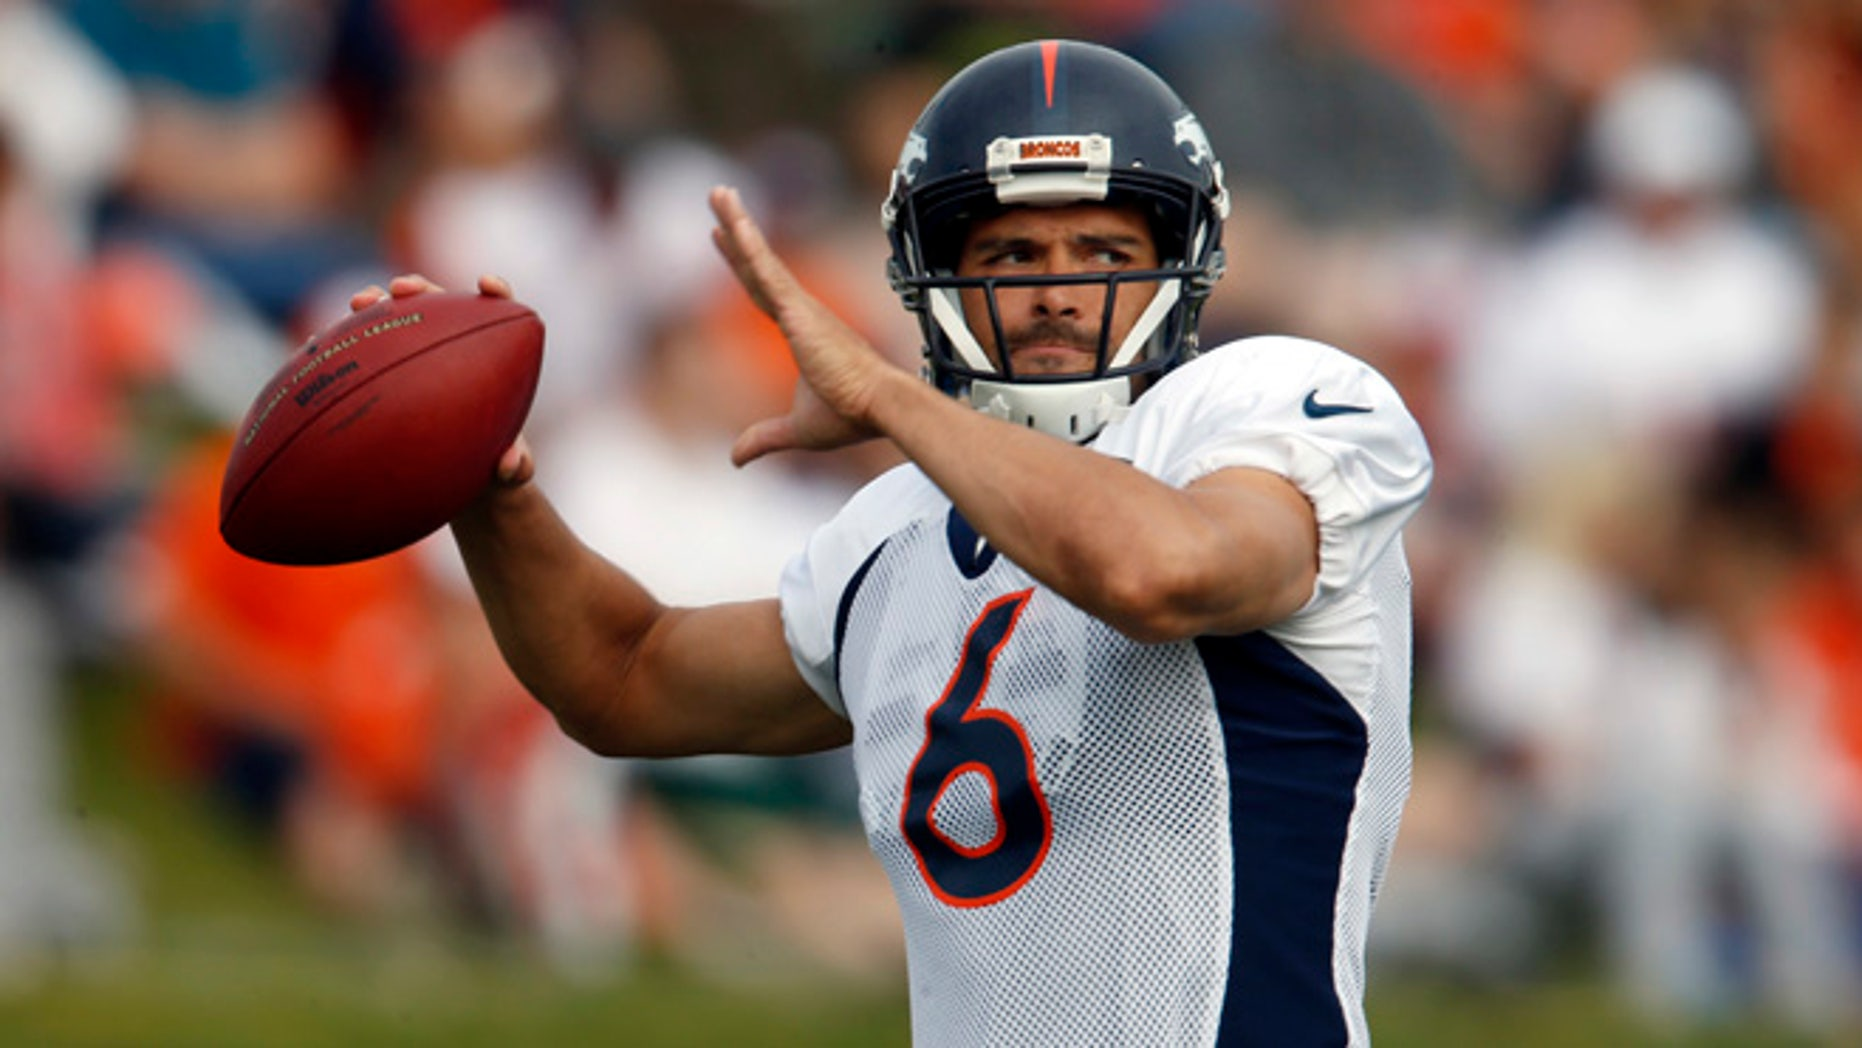 FILE - In this Thursday, Aug. 4, 2016, file photo, Denver Broncos quarterback Mark Sanchez throws a pass during NFL football training camp in Englewood, Colo. The Broncos announced Wednesday, Aug. 10, 2016, that Sanchez will be the starting quarterback for the preseason opener in Chicago on Thursday night. (AP Photo/David Zalubowski, File)